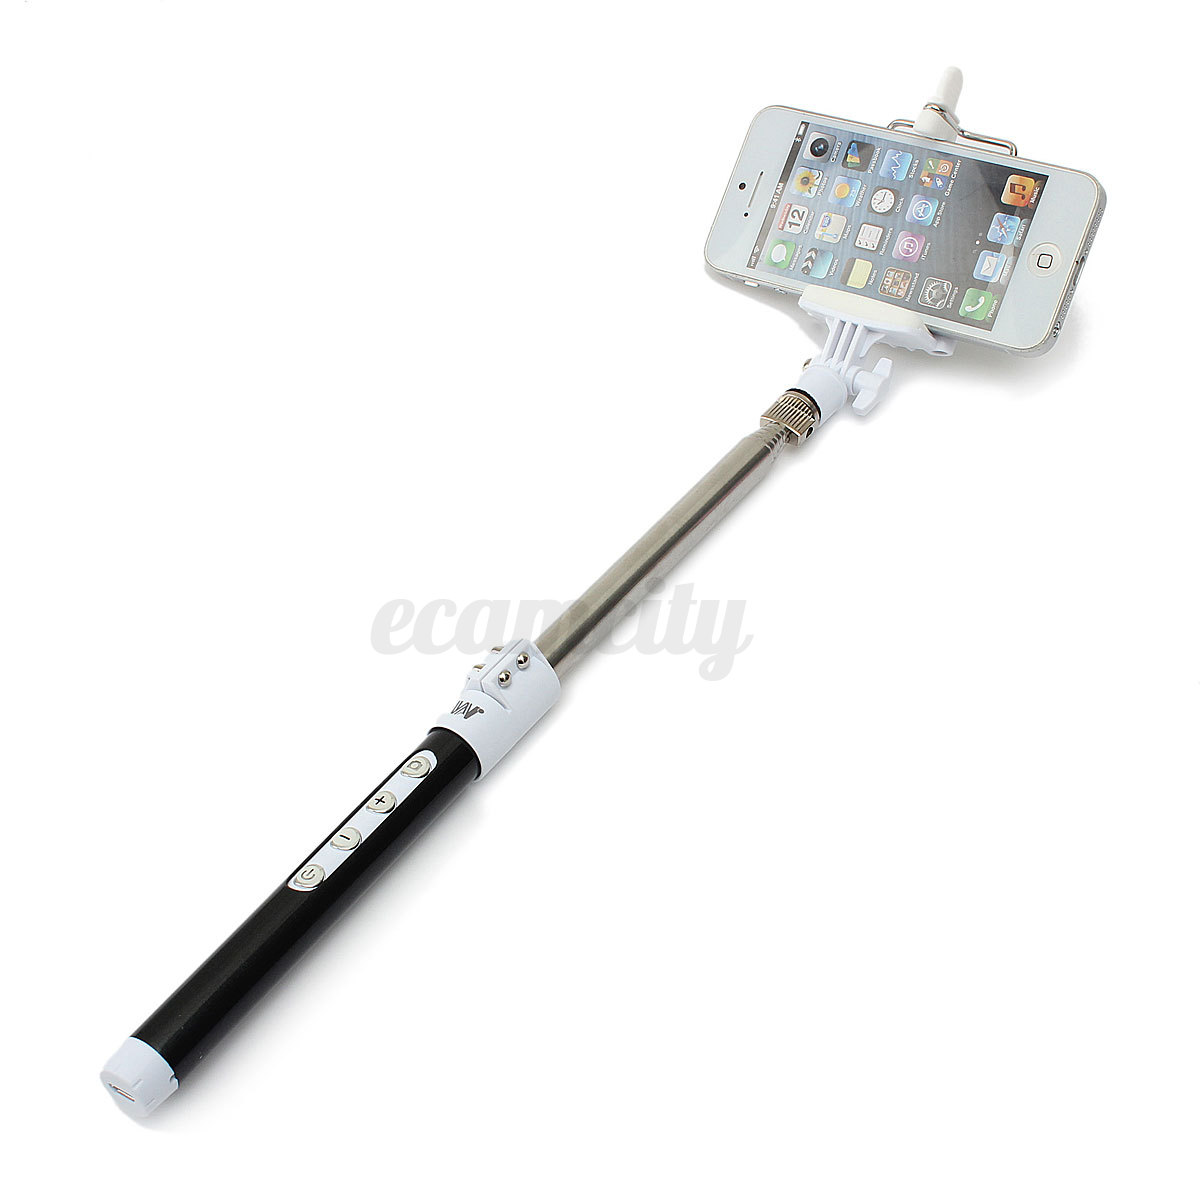 bluetooth remote monopod tripod selfie stick rechargeable for samsung iphone lg ebay. Black Bedroom Furniture Sets. Home Design Ideas